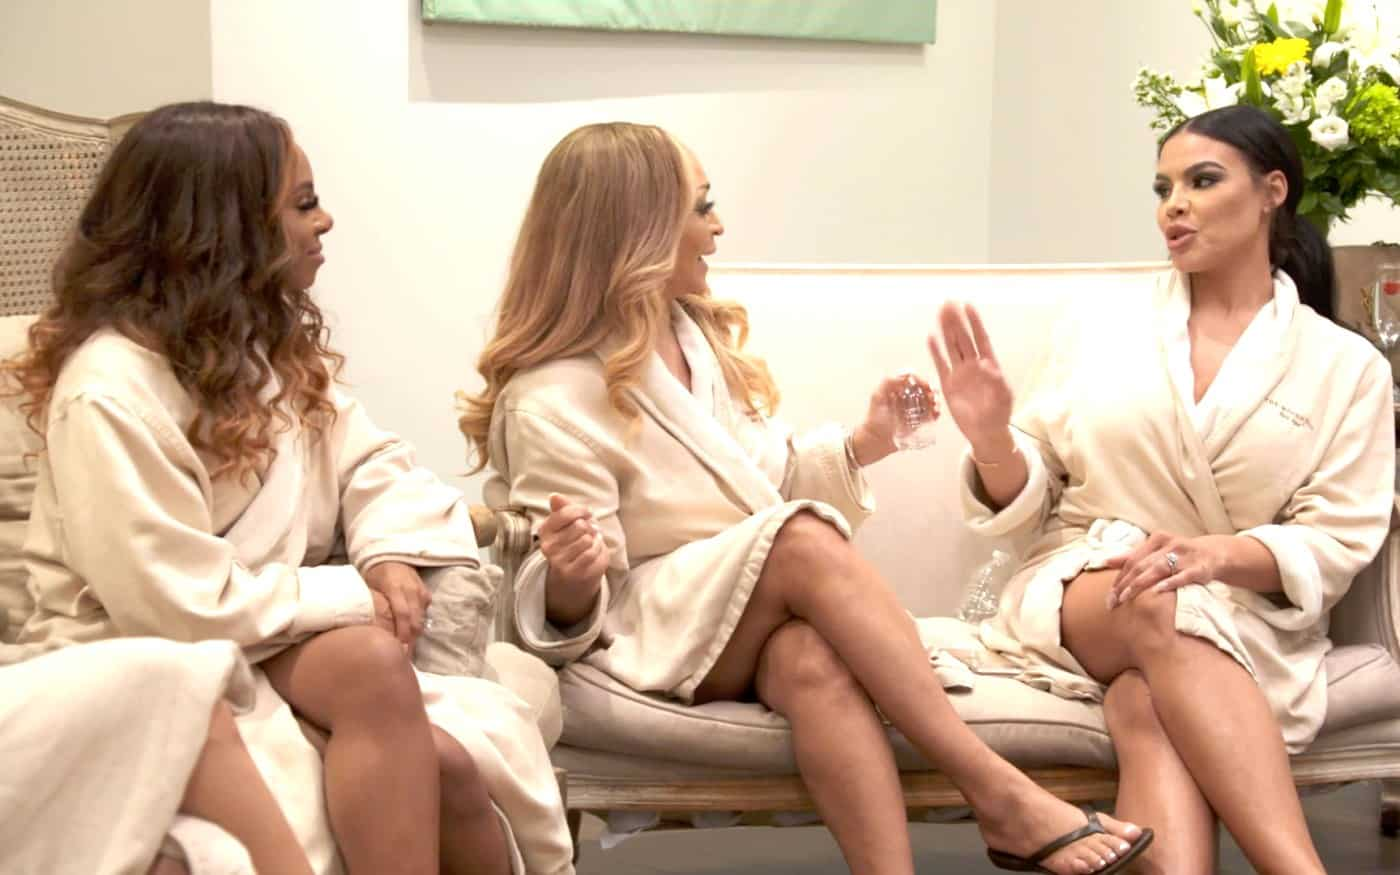 RHOP Recap: Mia Reveals She Was a Stripper When She Met Gordon as She Continues to Feud With Wendy, Plus Karen and Candiace Attempt to Mend Their Friendship